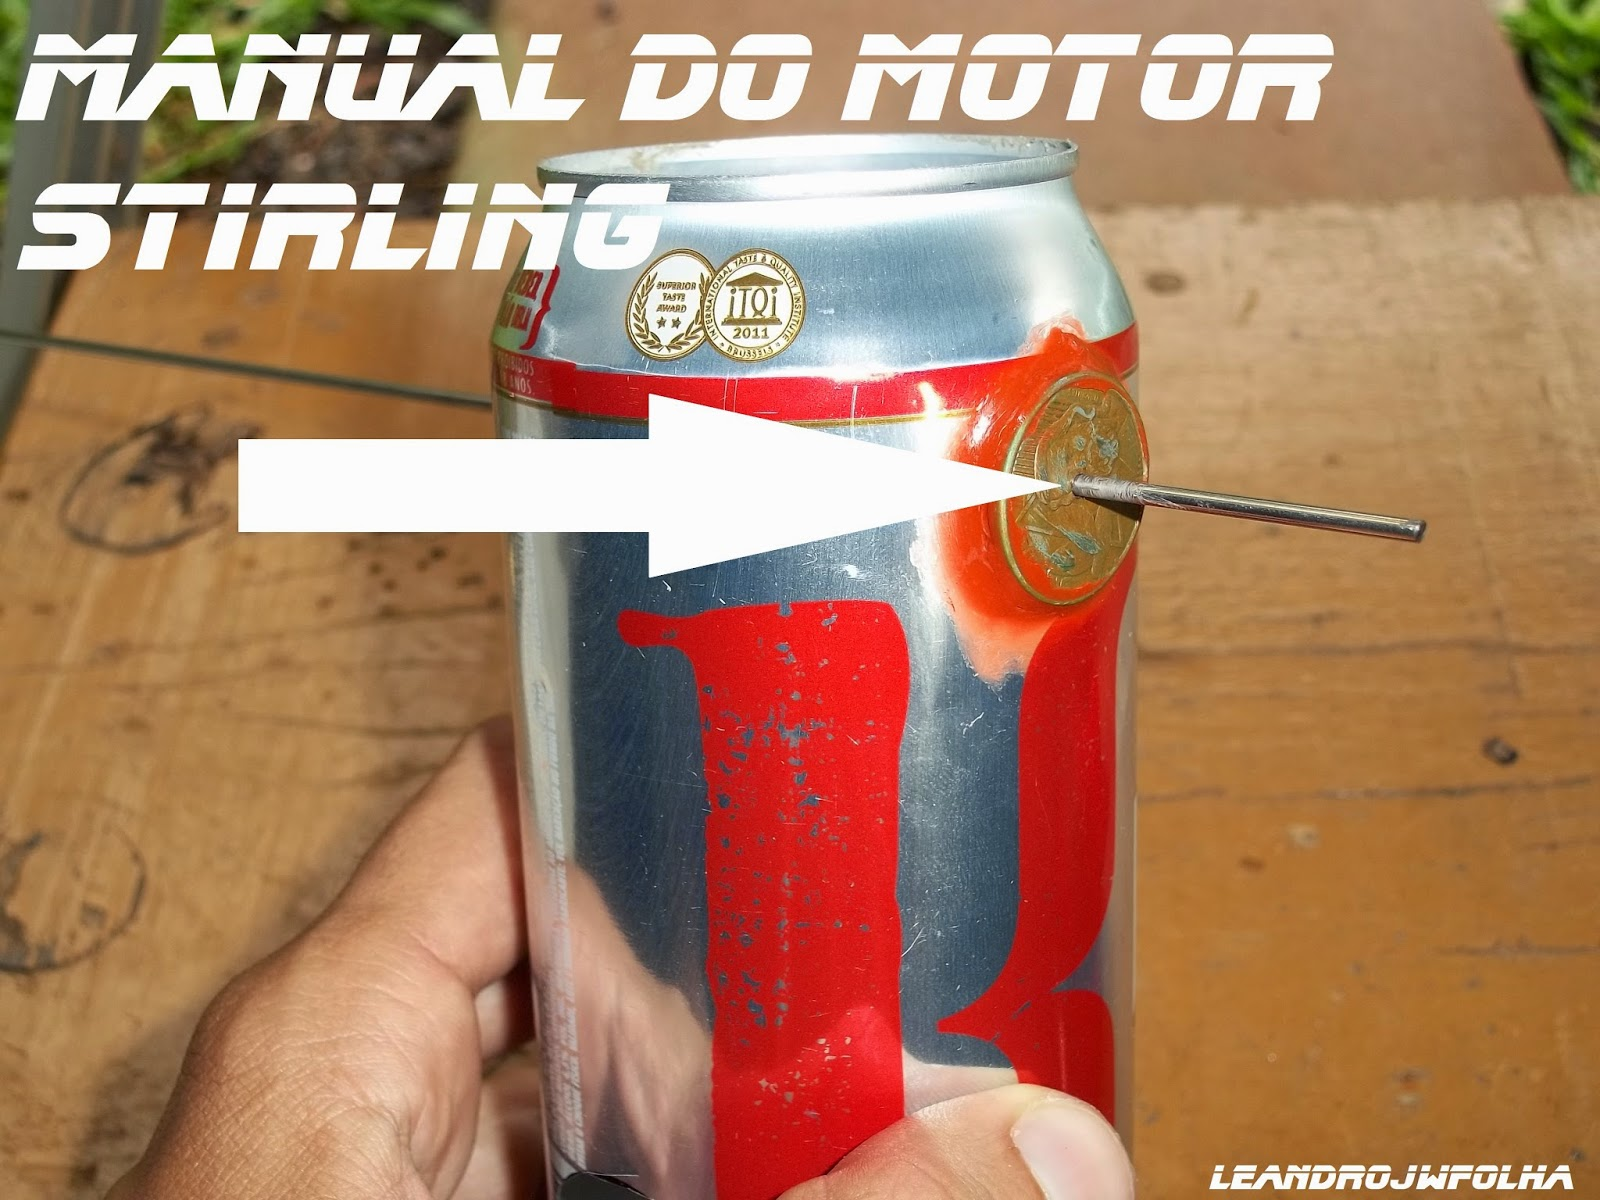 Cojinetes del cigüeñal hechos con monedas, Manual do motor Stirling